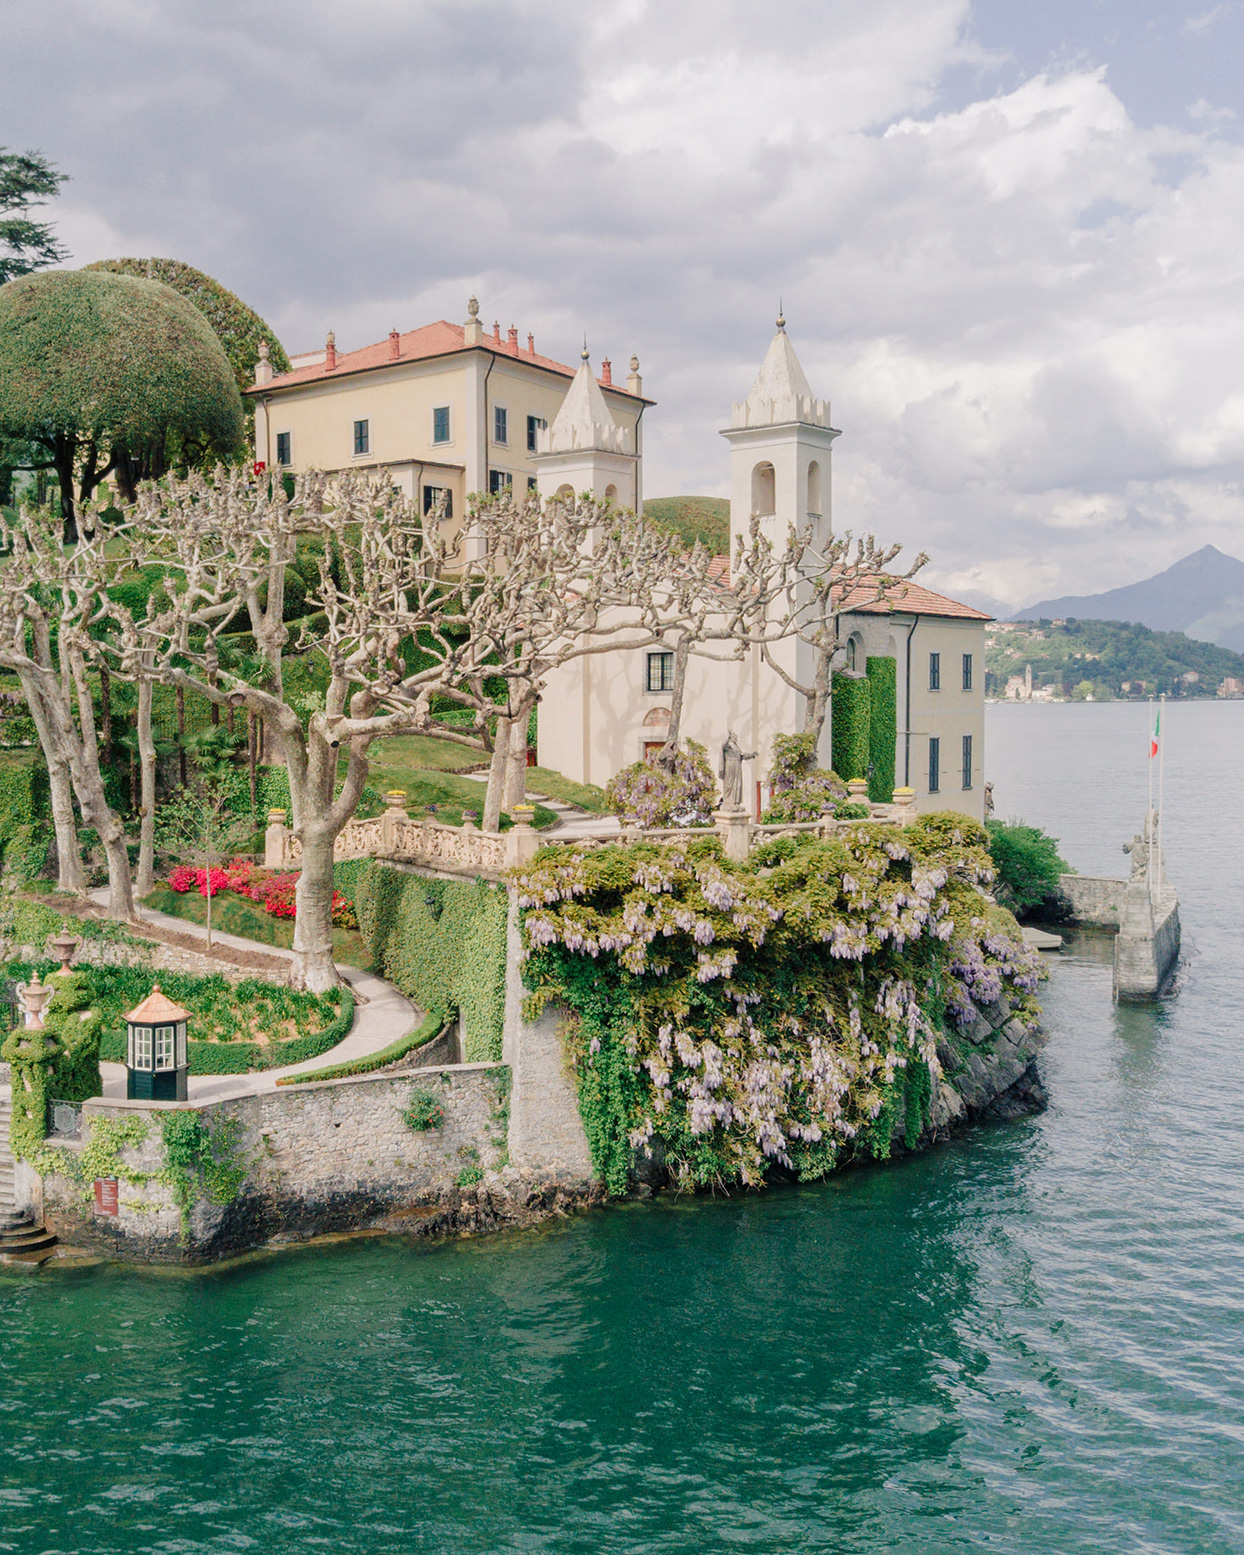 kiira arthur wedding venue by water como italy